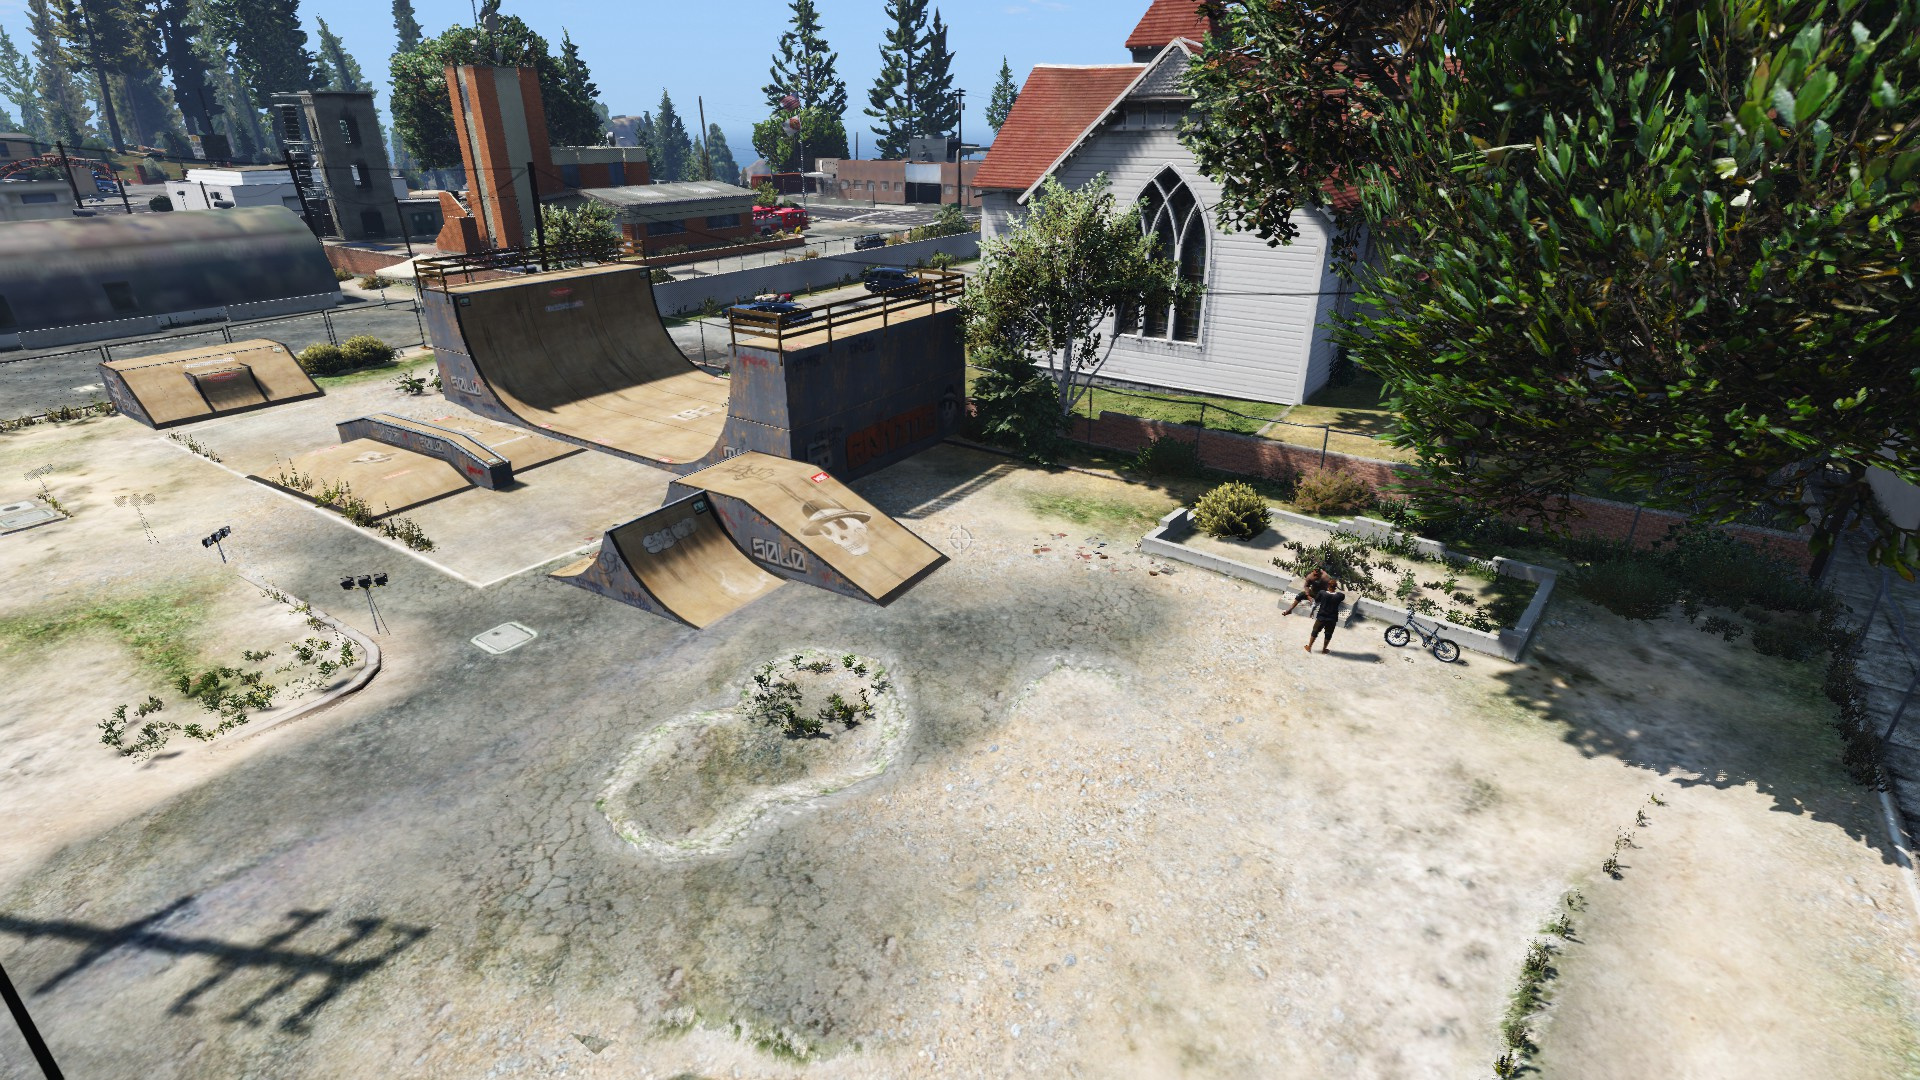 how to create private gta 5 session pc